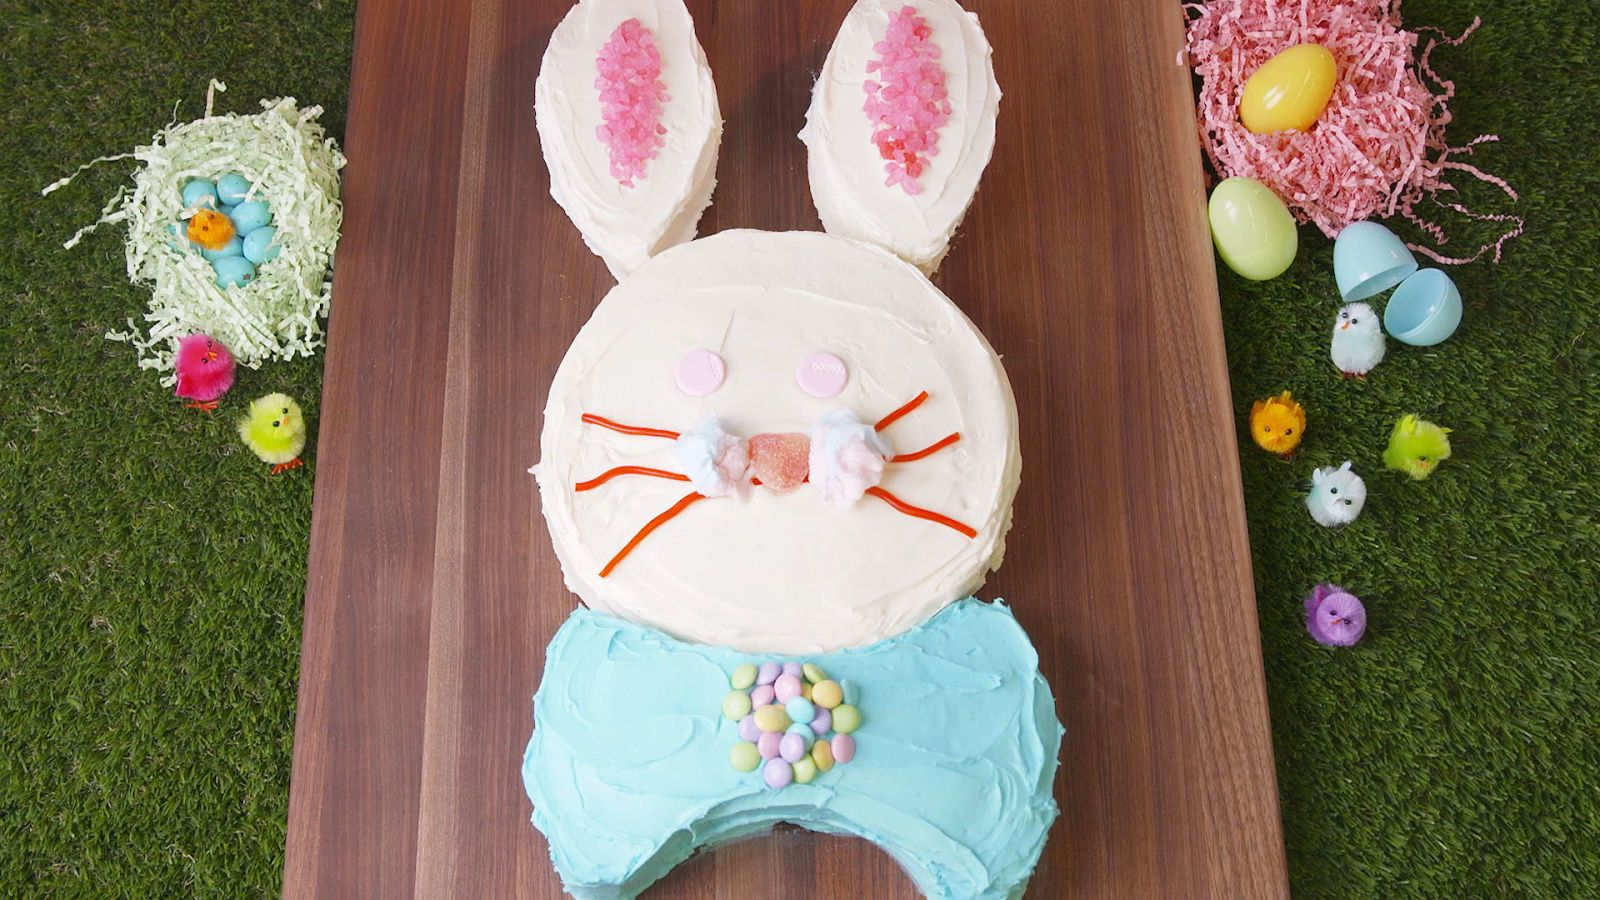 Easter Bunny Cake - Bunny cake, Easter bunny cake, Rabbit cake, Chocolate rabbit, Easter cakes, Easter - Looking for the perfect Easter dessert recipe  Look no further! This adorable bunny cake is surprisingly easy to make  All you need is a round cake pan! Check out the recipe from Delish com and have a very hoppy Easter